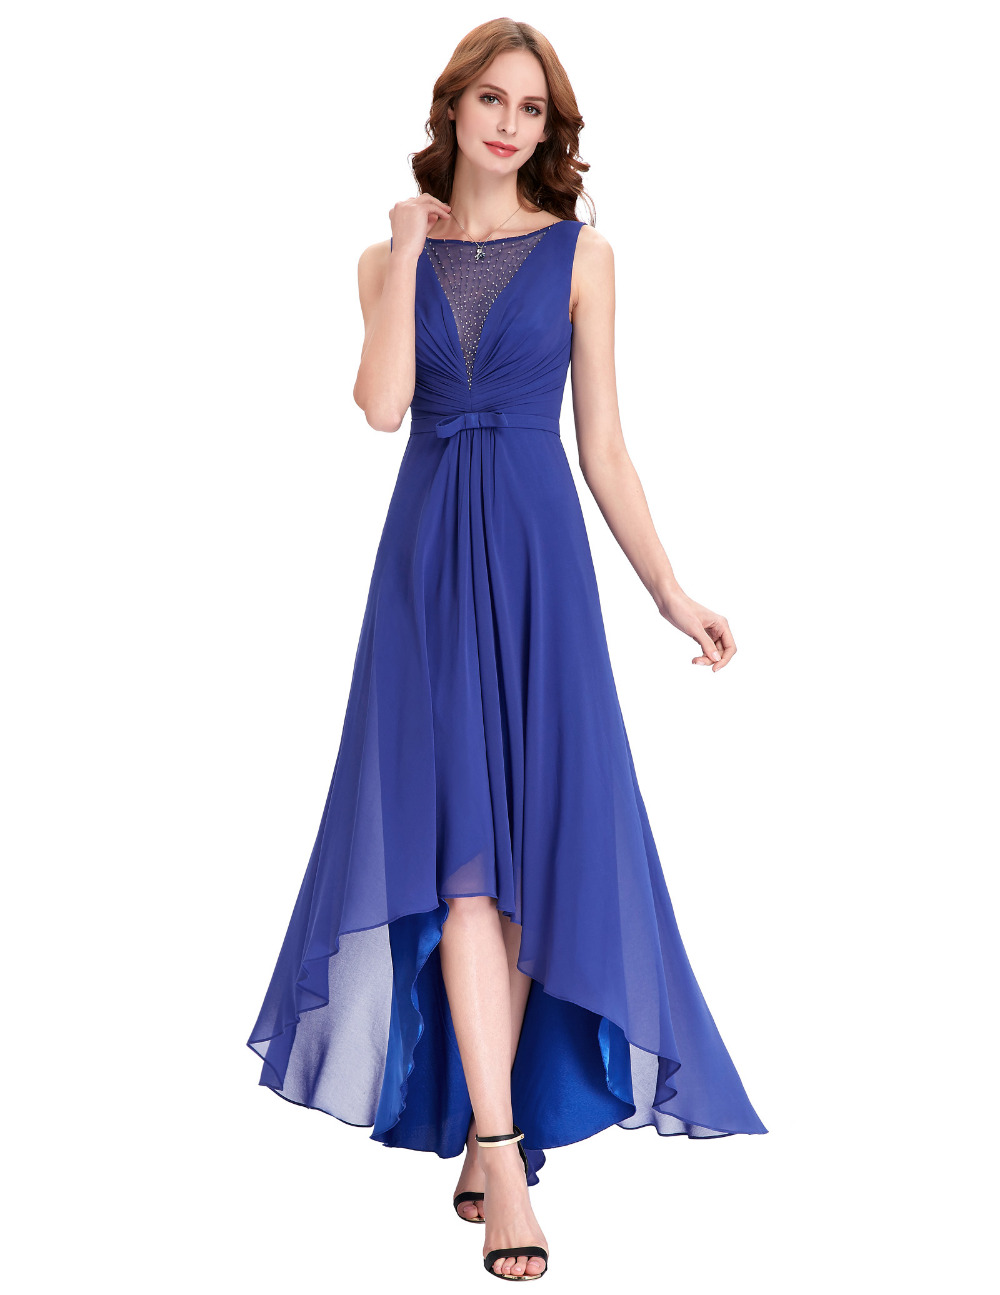 Low Back Wedding Guest Dresses : Buy high low bridesmaid dresses royal blue wedding guest dress